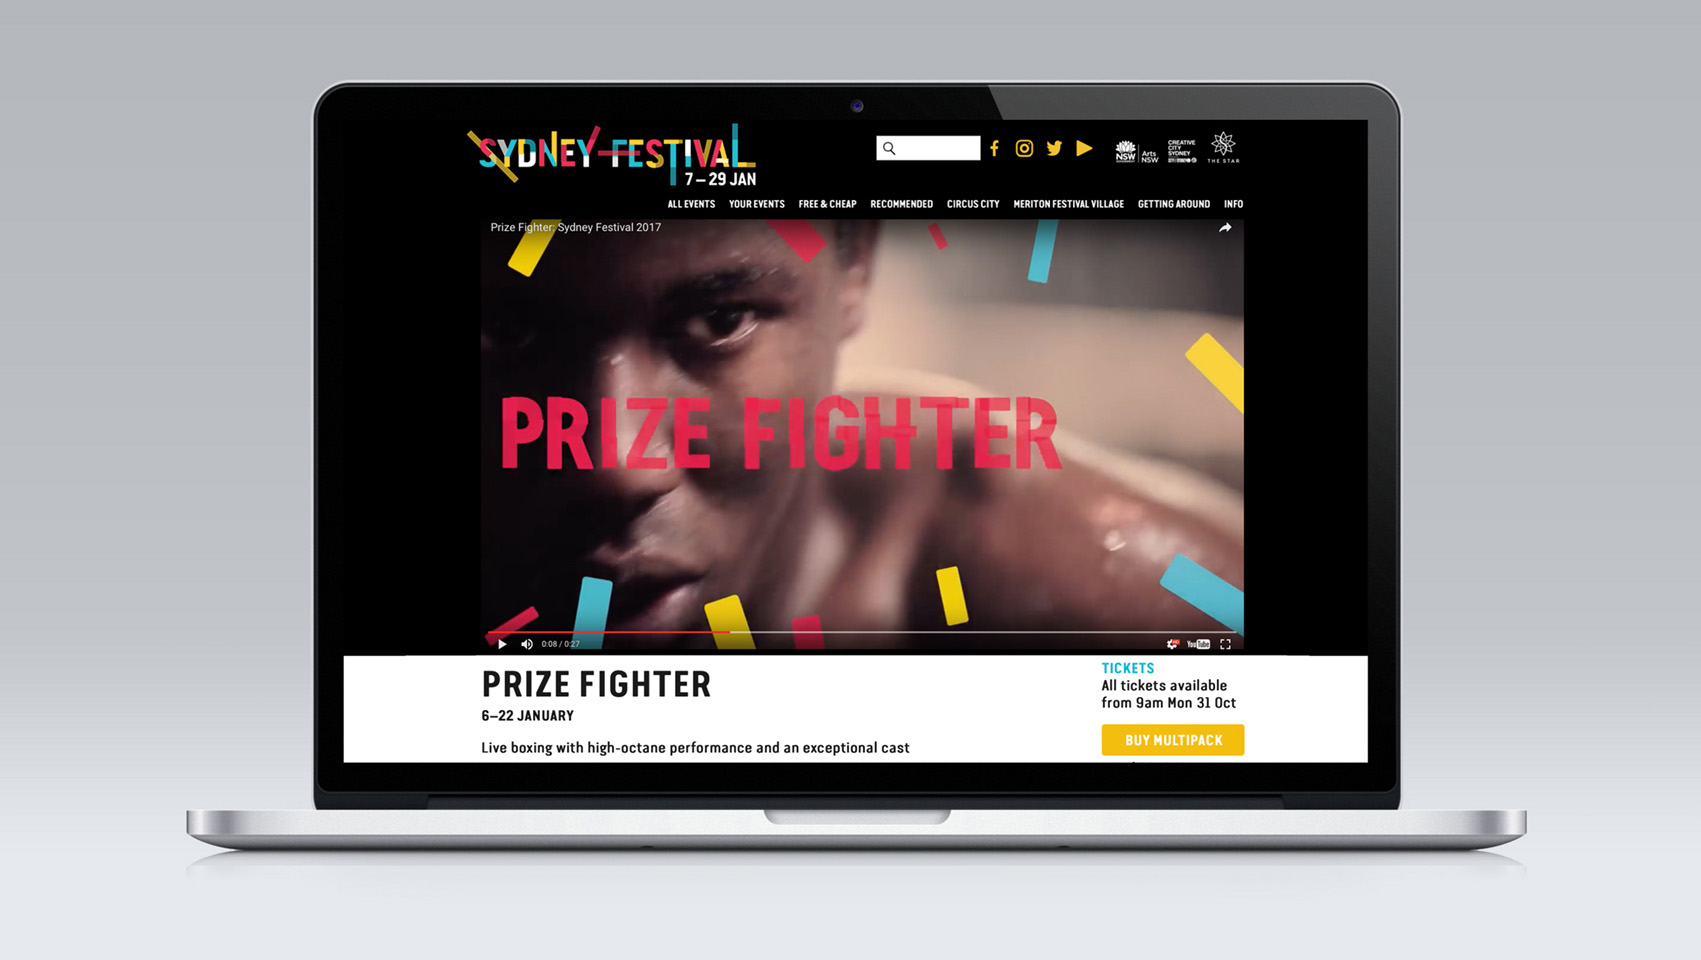 SydneyFestival-website3